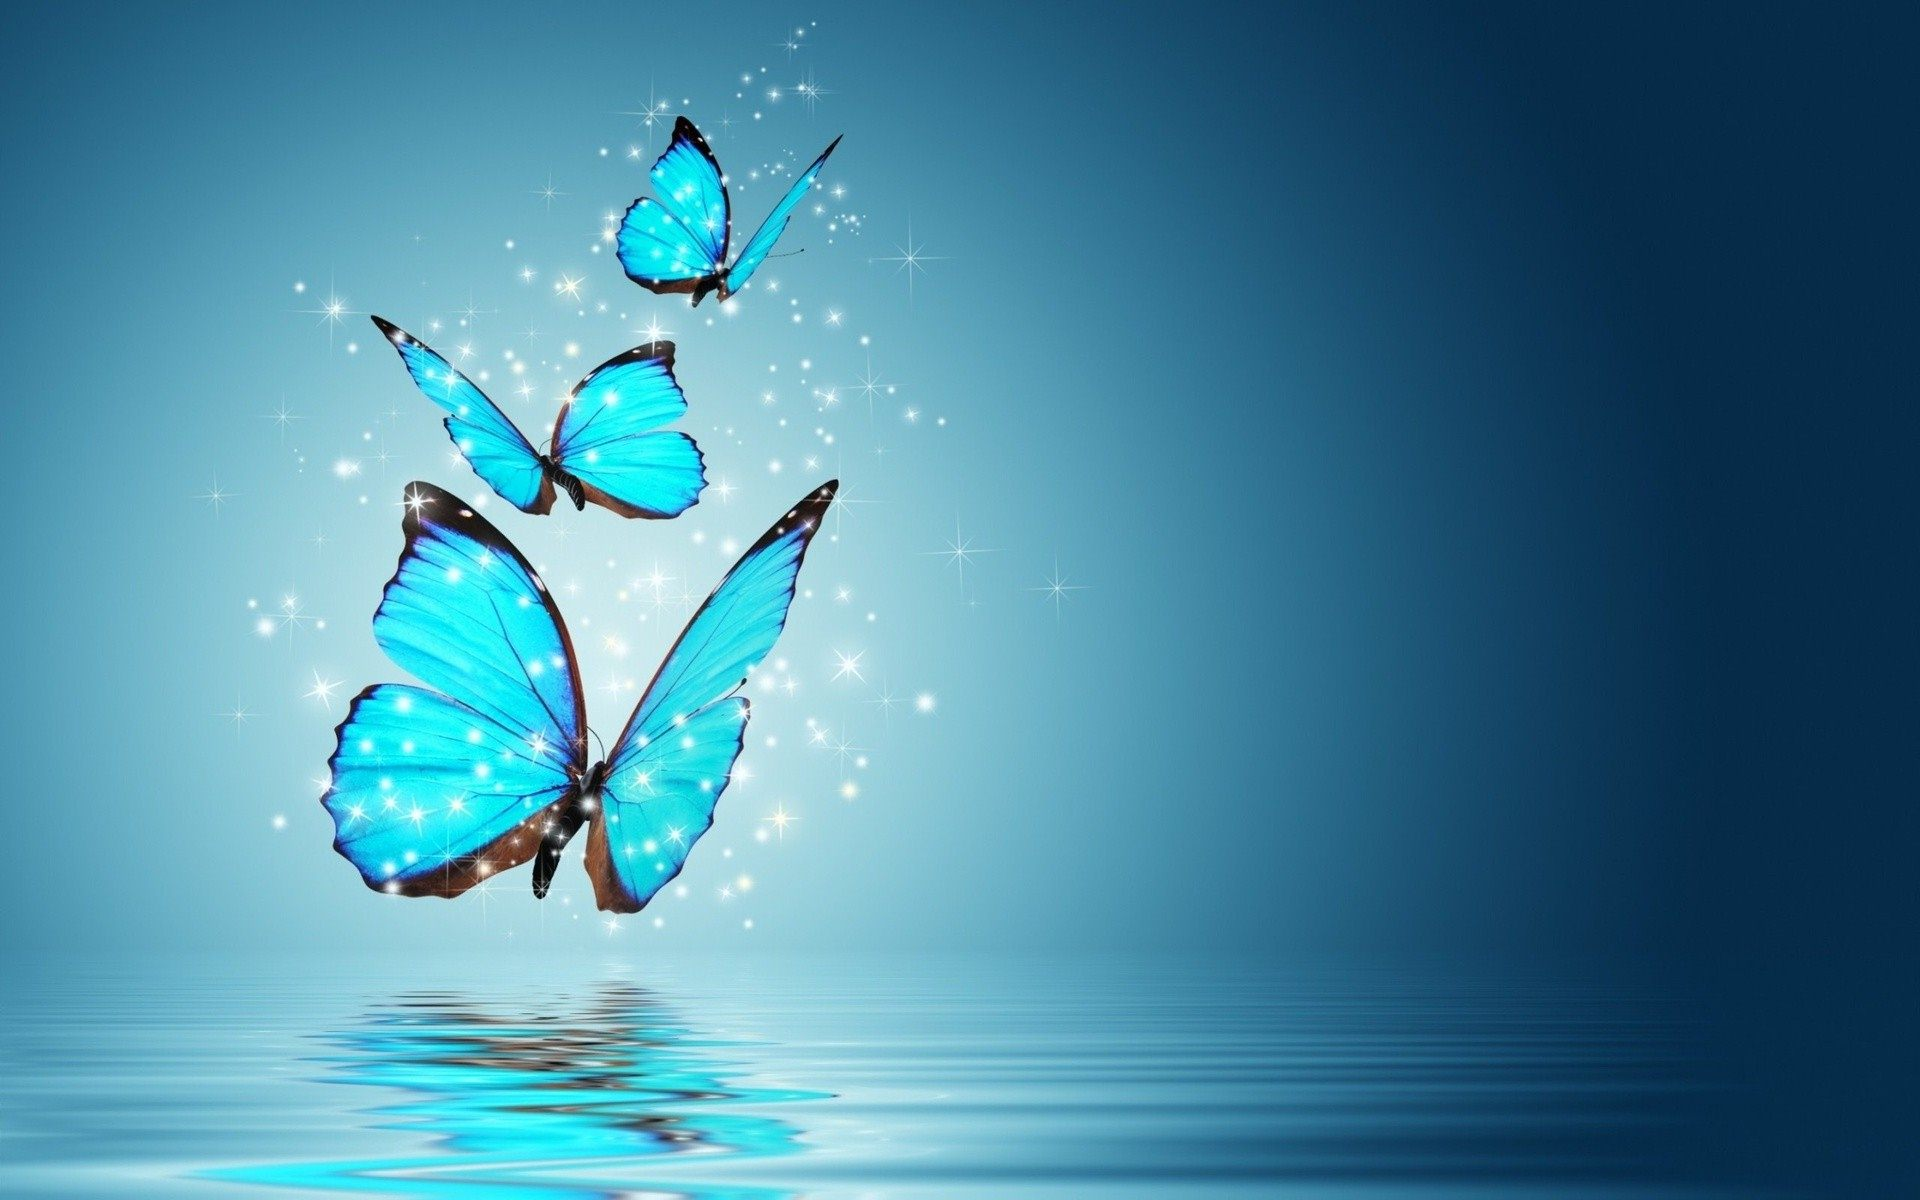 Beautiful Butterfly Wallpapers  Android Apps on Google Play 1920x1200